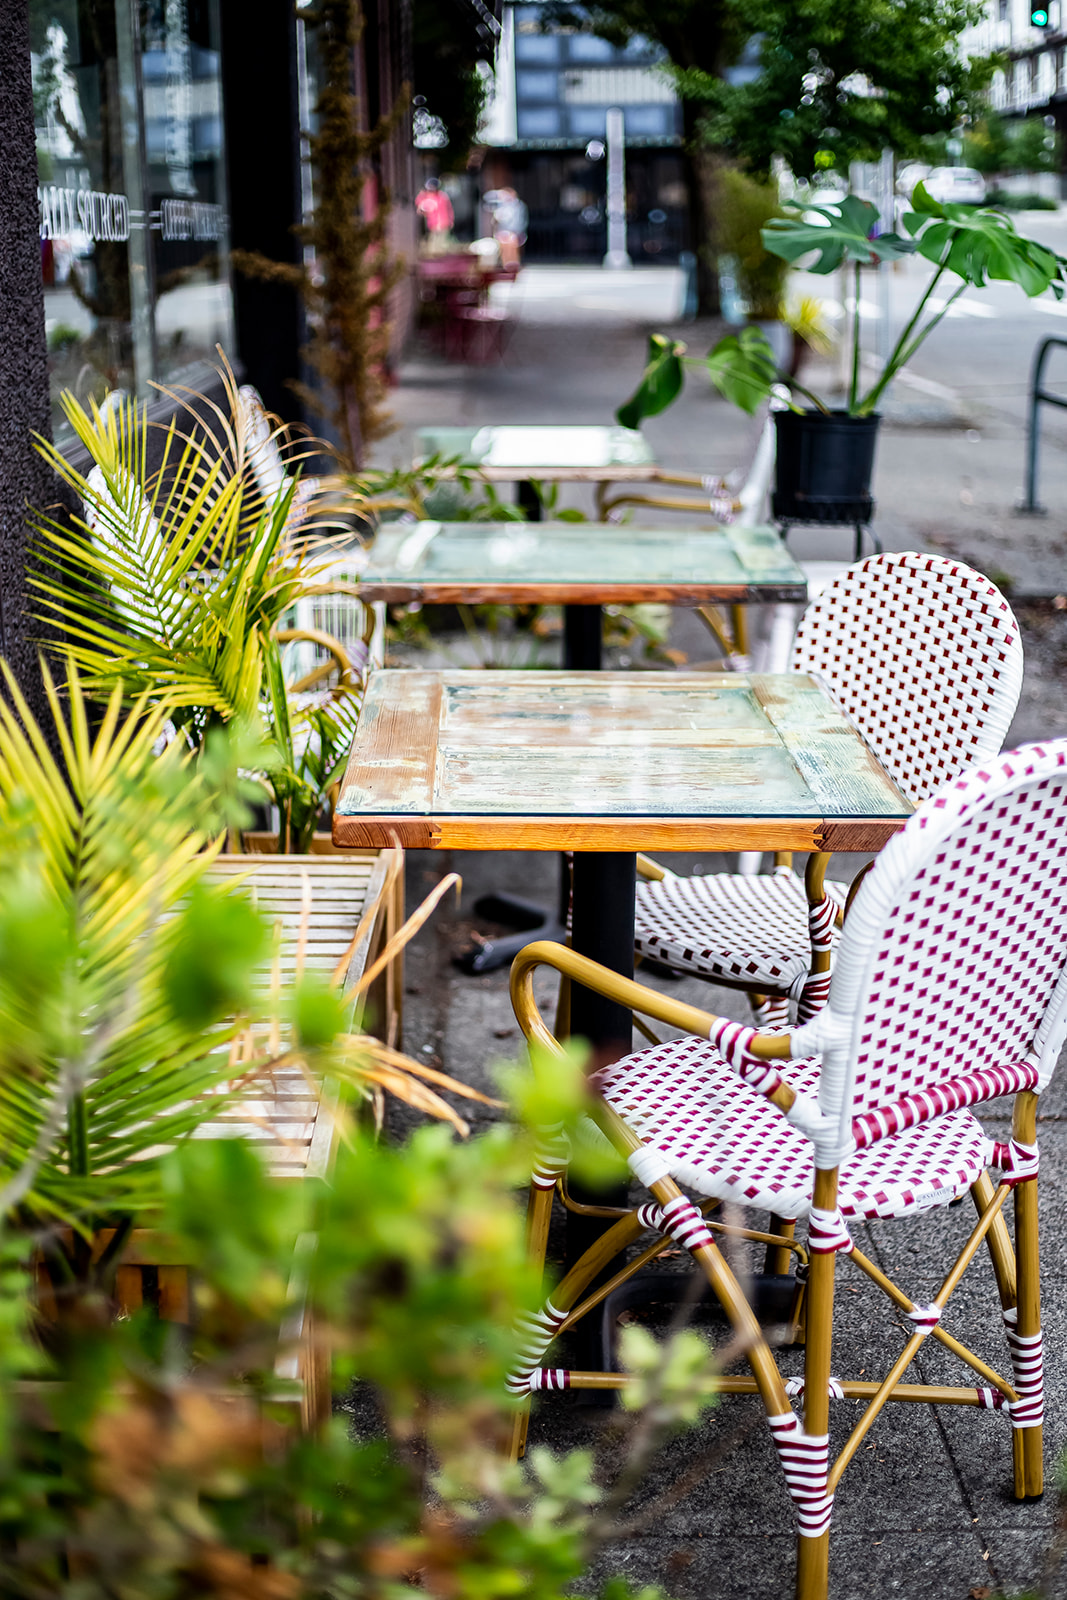 "Instagram-worthy patio seating available on the weekends. Cafe Mia features seasonal, locally-sourced and ethical cuisine - every dish is prepared in house by Mia herself. Cafe Mia is tucked away near the West Seattle Junction on SW Oregon Street. The perfect spot for brunch after hitting the farmers market on Sunday! Find them on Instagram{&nbsp;}<a  href=""https://www.instagram.com/cafe.mia/?hl=en"" target=""_blank"" title=""https://www.instagram.com/cafe.mia/?hl=en"">@cafe.mia</a>. (Image:{&nbsp;}Samantha Witt / Seattle Refined)"